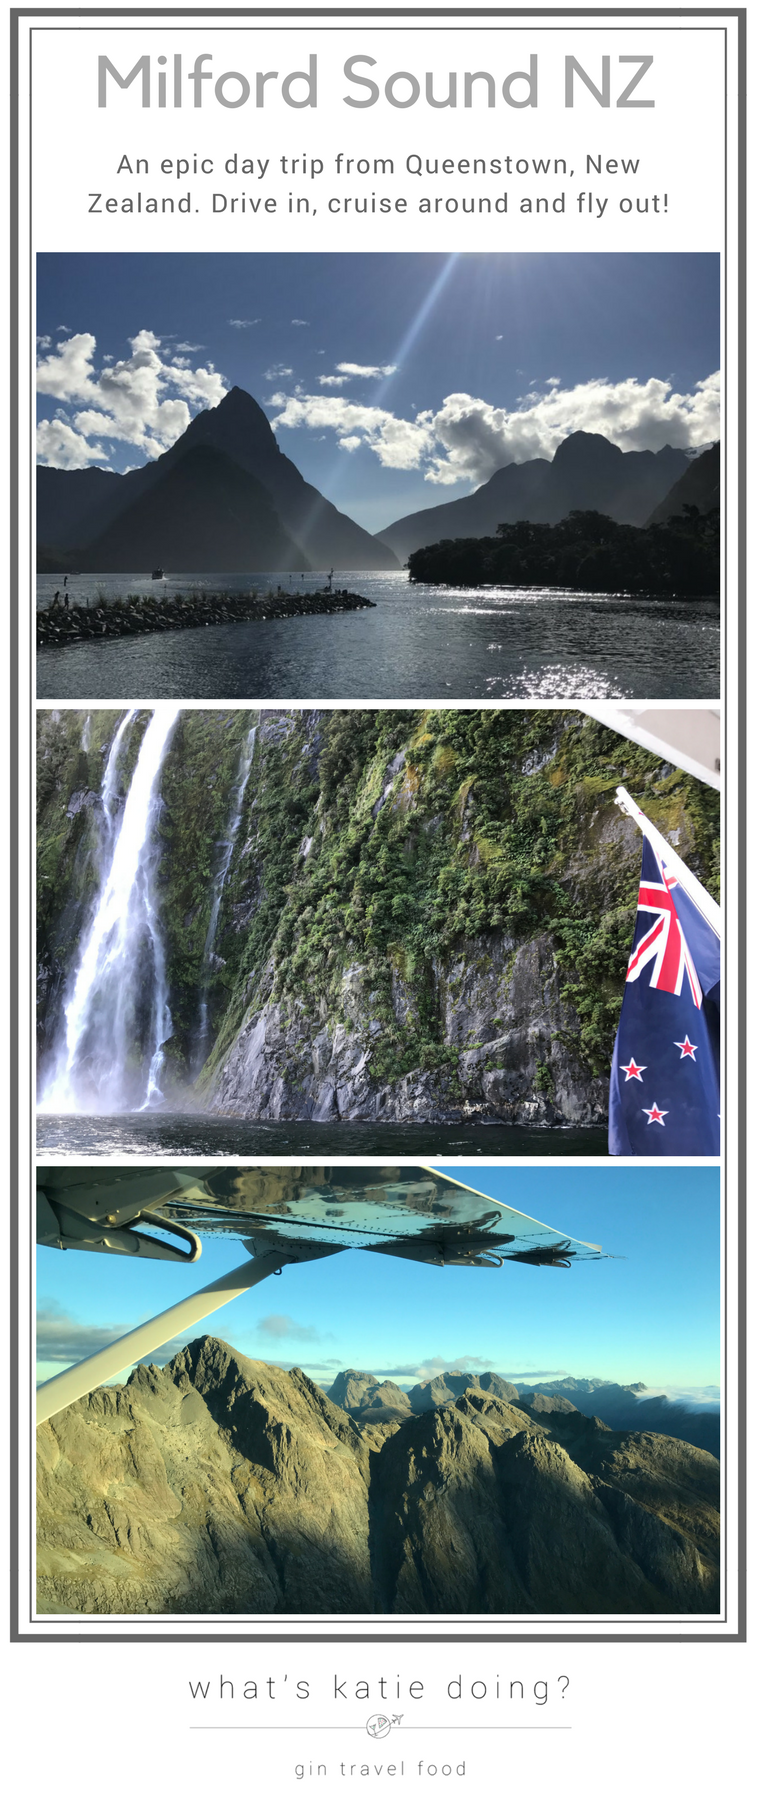 You can day trip from Queentown, New Zealand to Milford Sound easily! Read my experience, driving in on the BBQ bus, cruising the Sound and flying back out! #milfordsound #newzealand #daytrip #milfordsoundcruise #bbqbusNZ